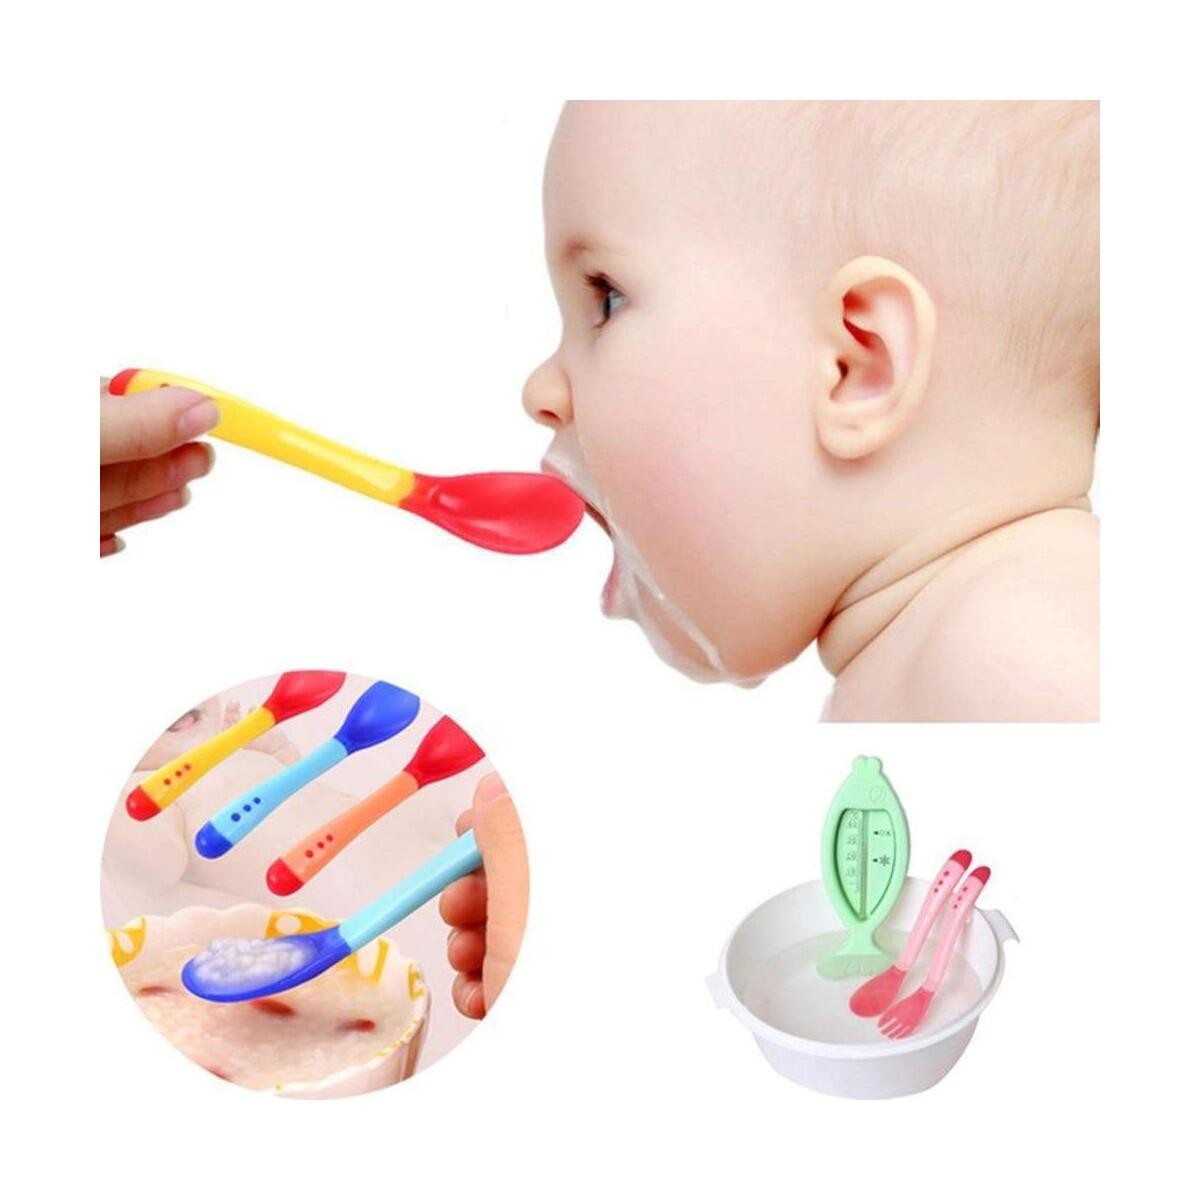 Baby Spoons Safety Temperature Sensing Feeding Silicon Spoon Kids Flatware Toddler Utensils Resistant Bendable Soft Perfect Self Feeding Learning